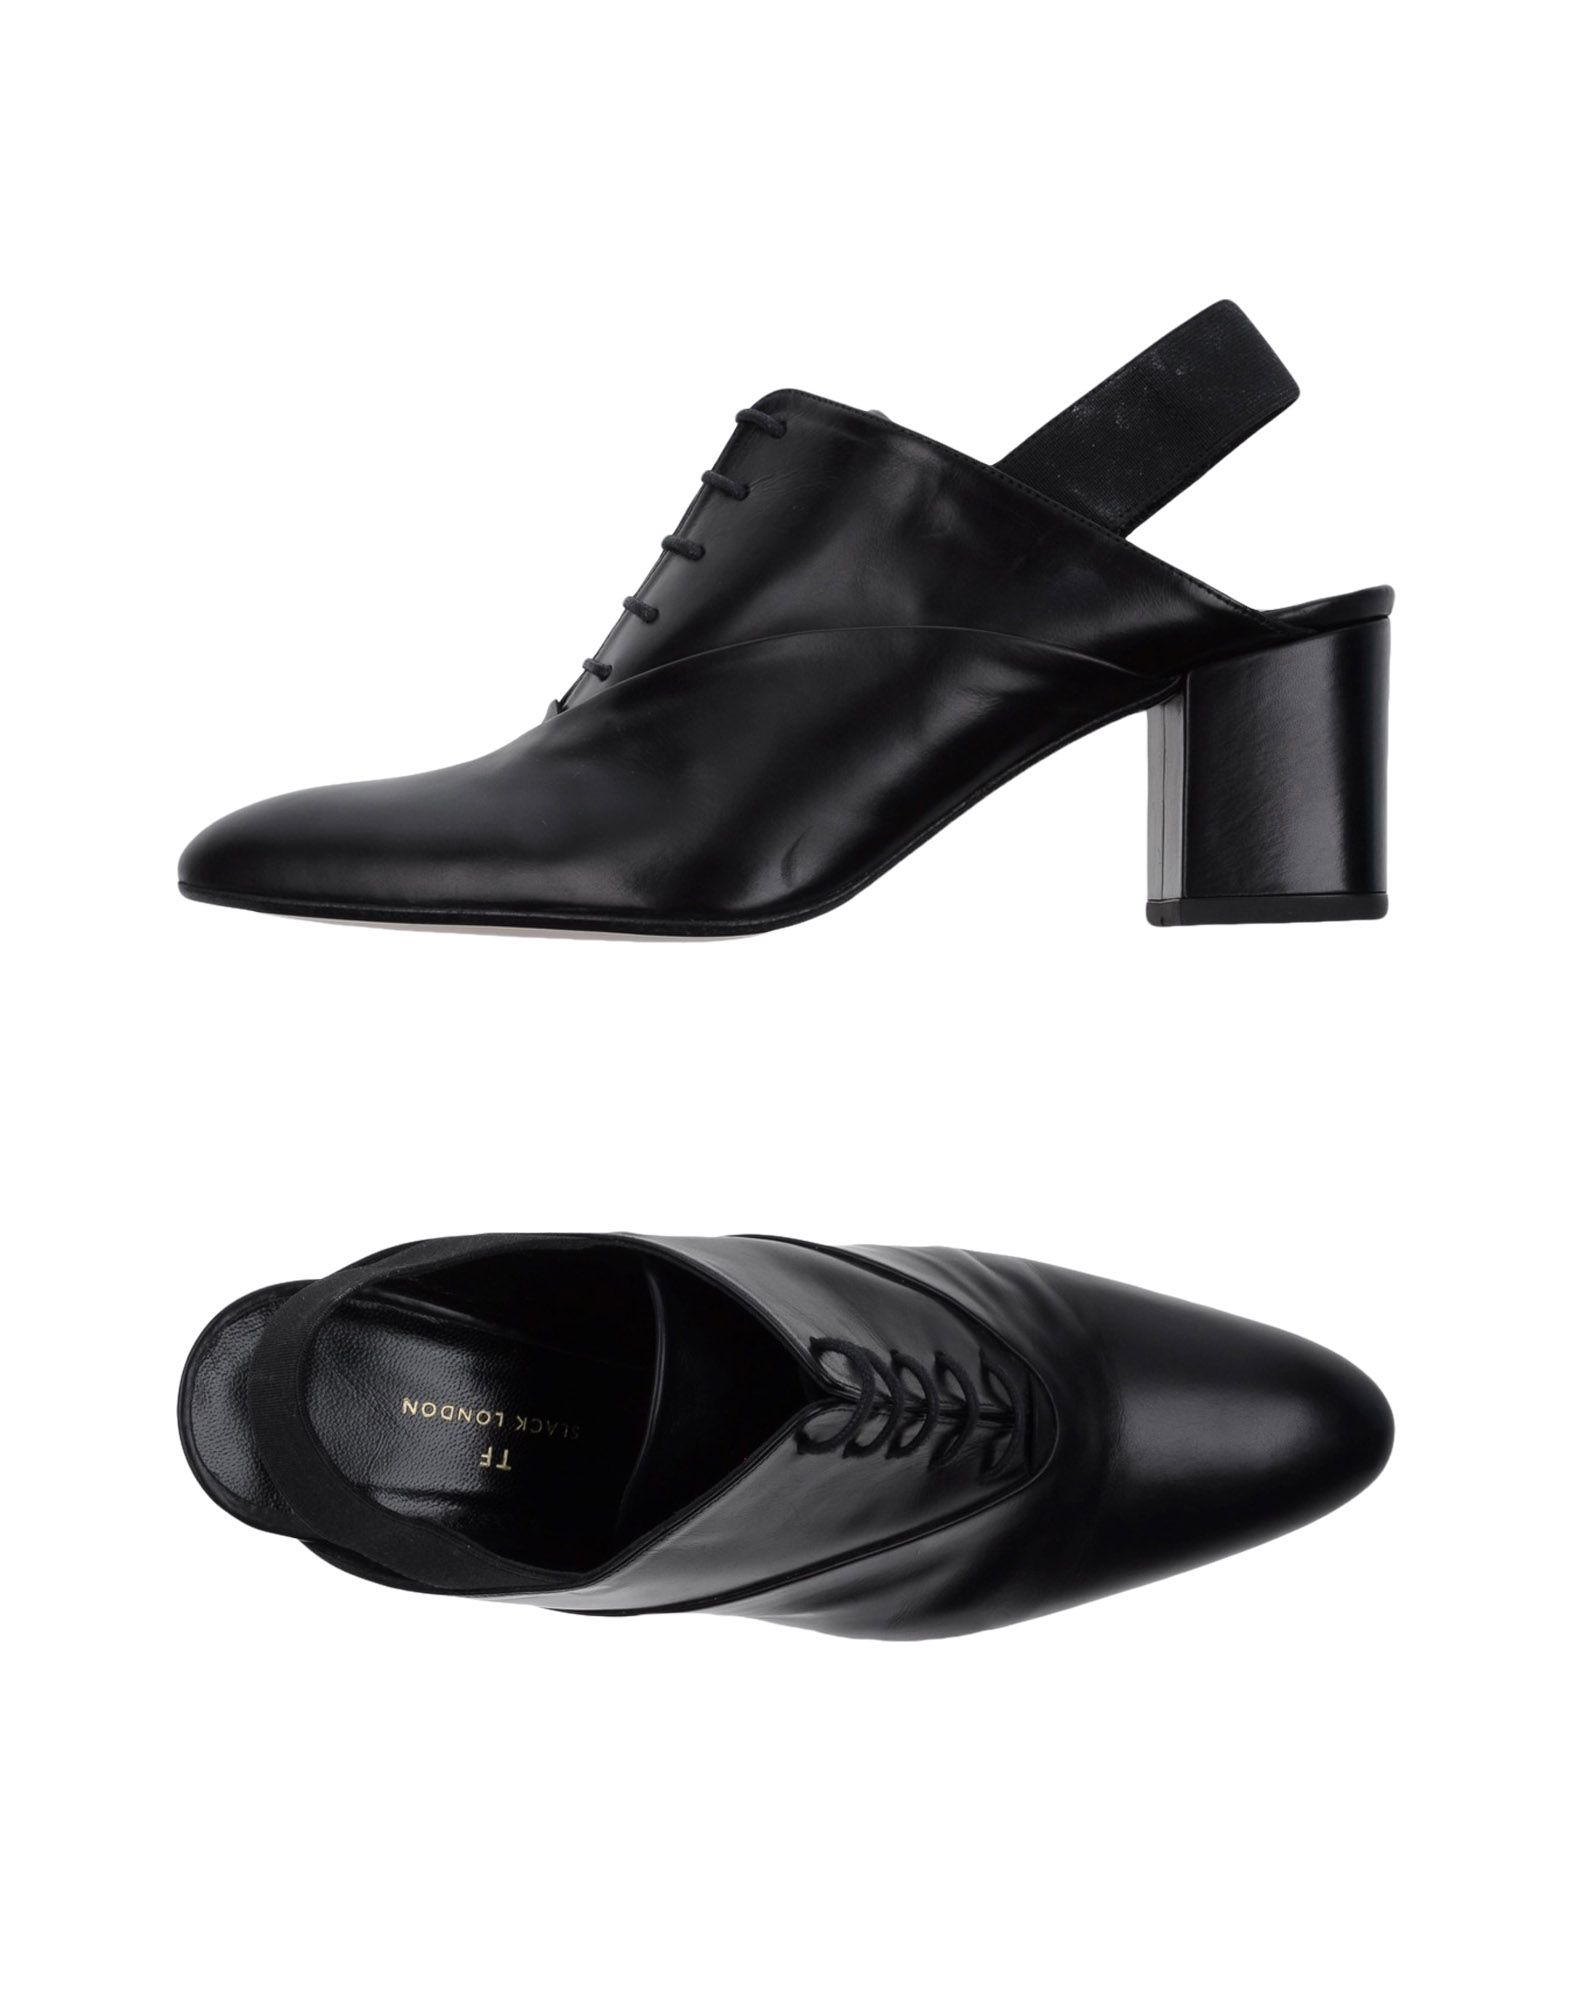 Décolleté T&F Slack Shoemakers London Donna - Acquista online su